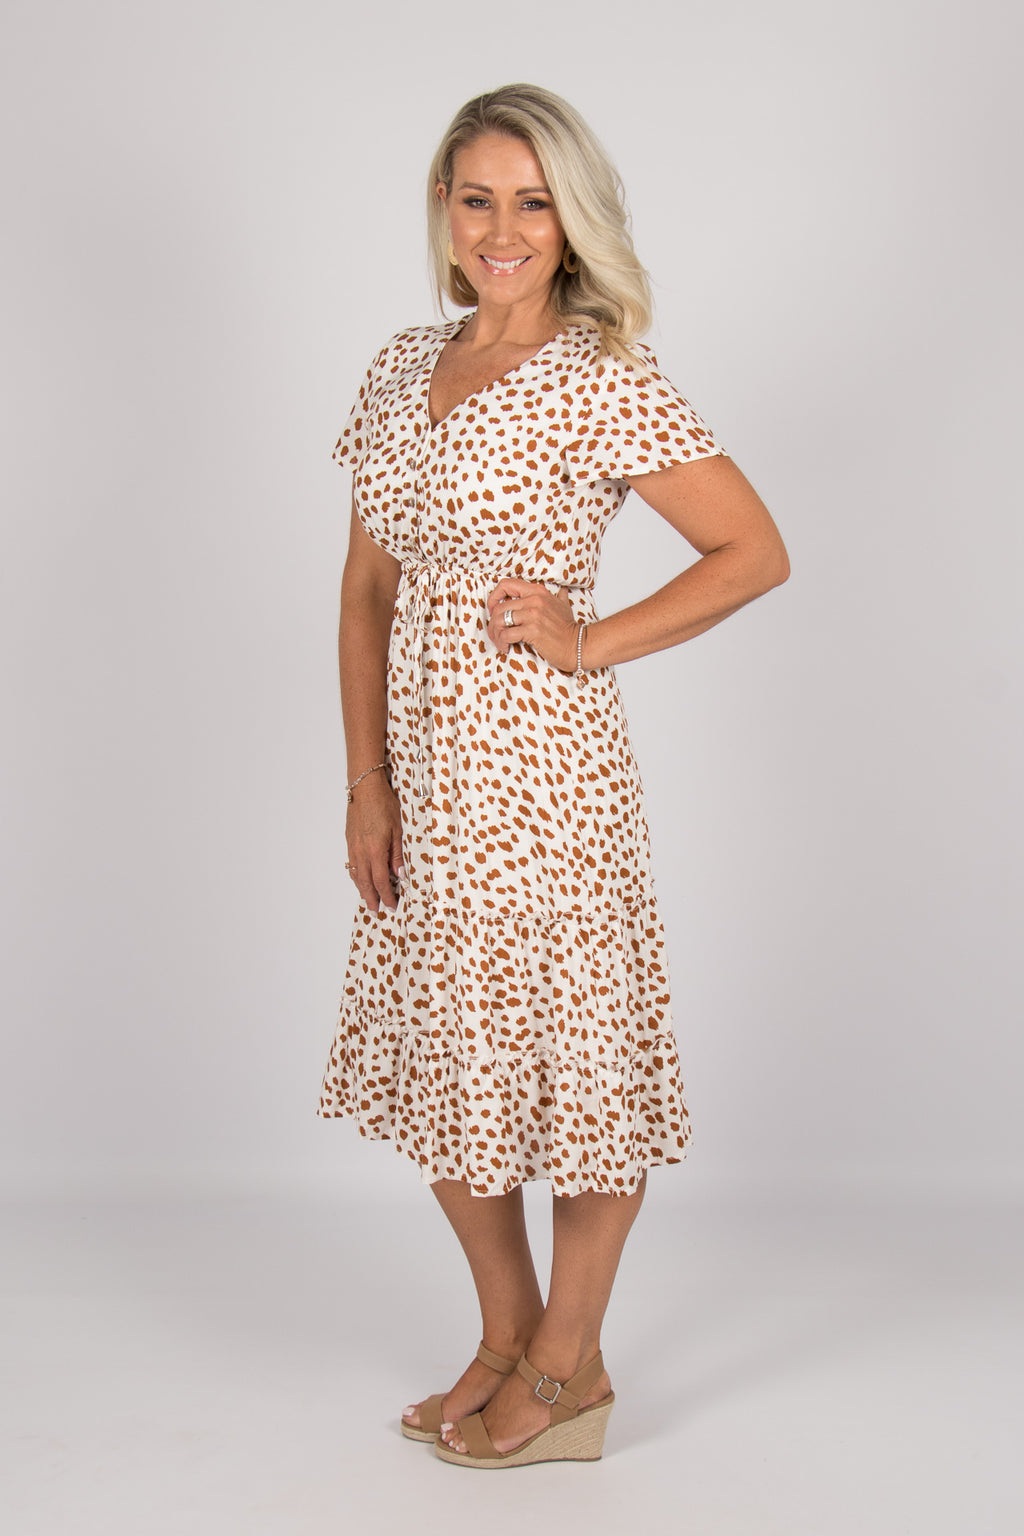 Kingston Dress in White/Copper